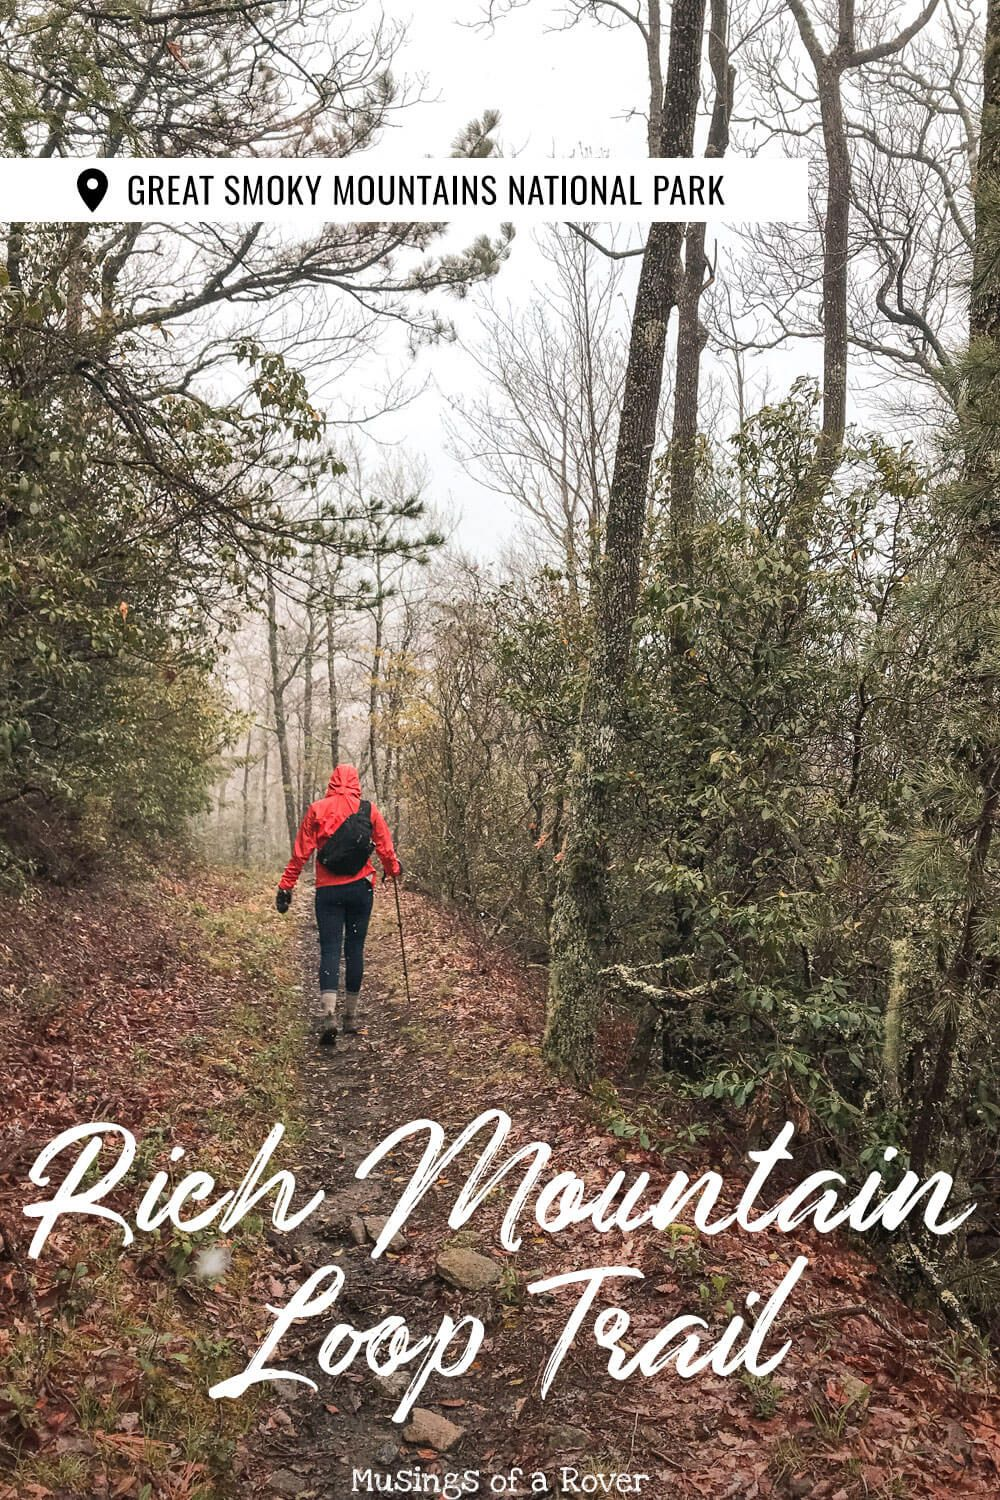 Headed to Cades Cove in the Great Smoky Mountains National Park? The Rich Mountain Loop day hike gives you a chance to escape the crowds. It's got viewpoints, stream crossings, wildflowers, and even a waterfall. And thought it's quite a tough hike, I think it's worth it!